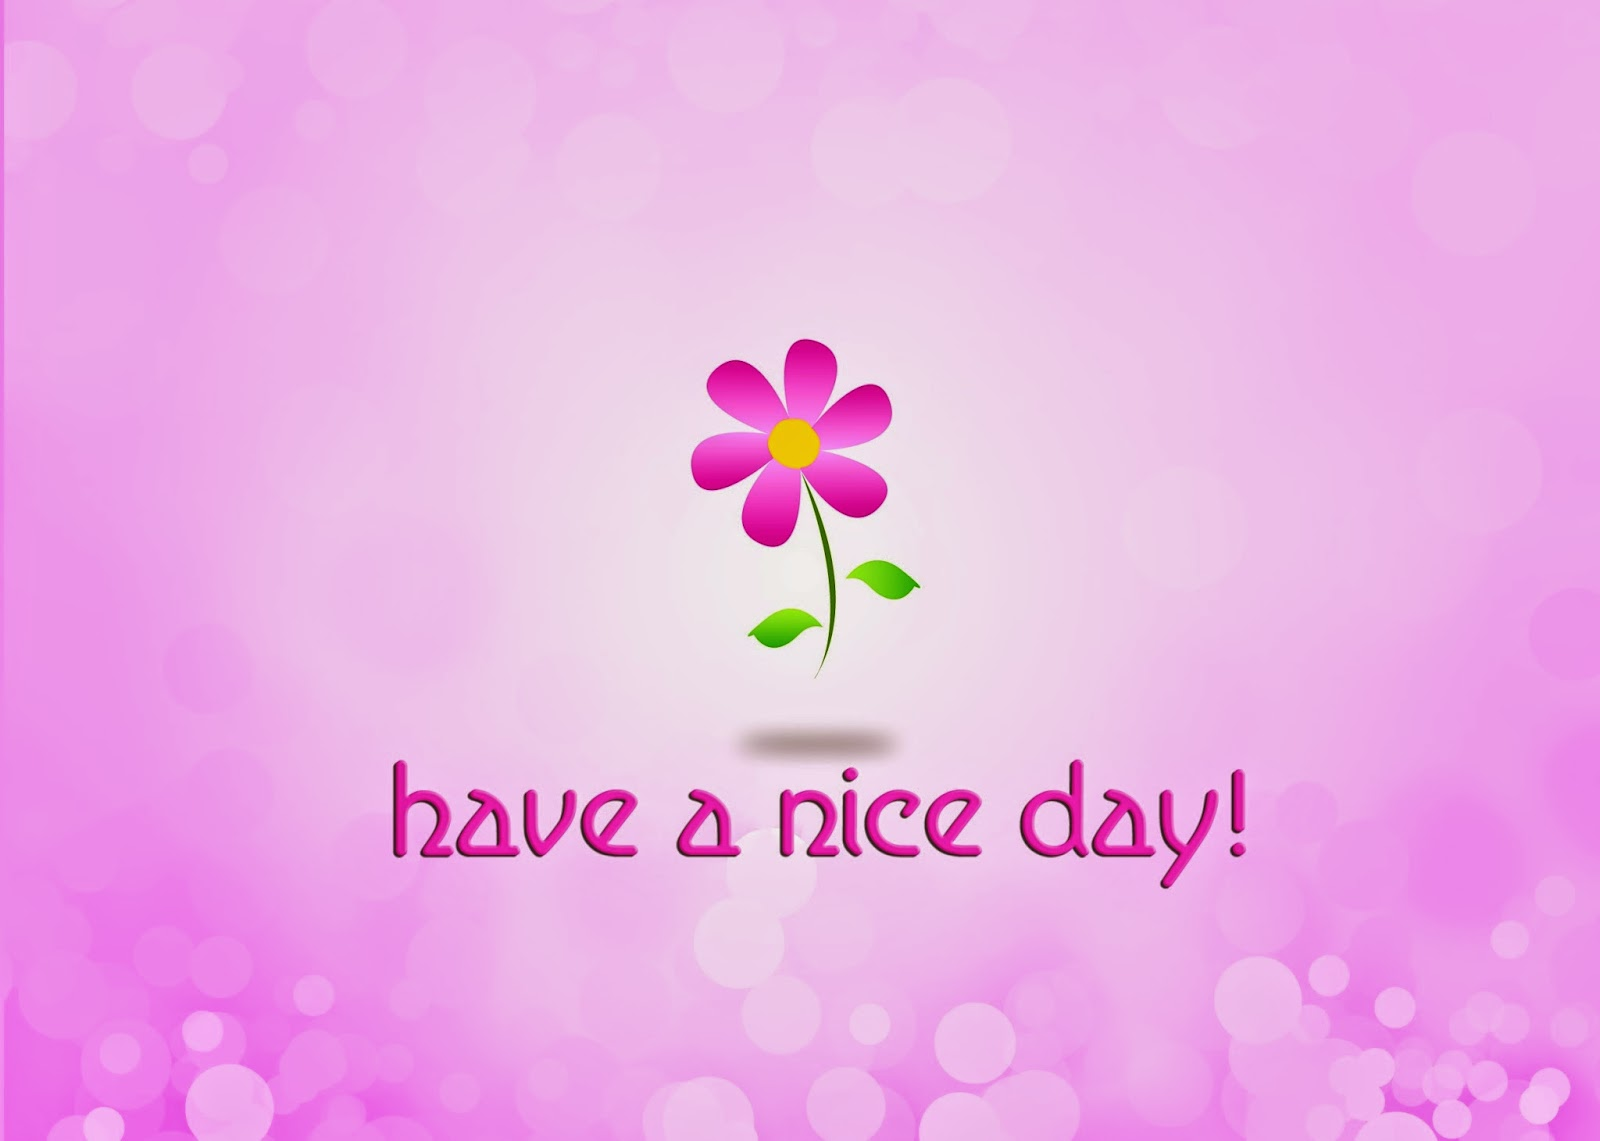 Have a nice day very good morning hd wallpaper